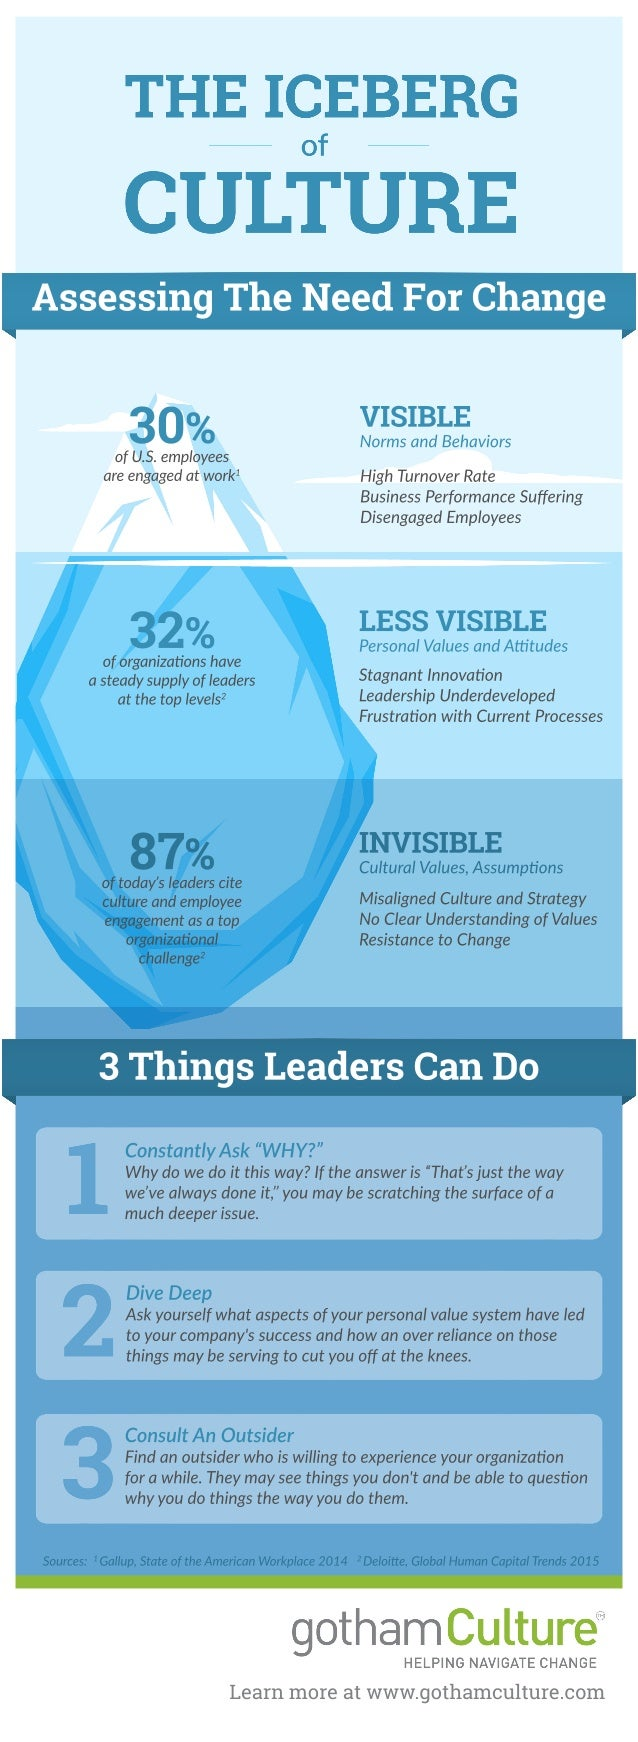 Learnmoreatwww.gothamculture.com 30%ofU.S.employees areengagedatwork1 32%oforganizaonshave asteadysupplyofleaders atthetop...